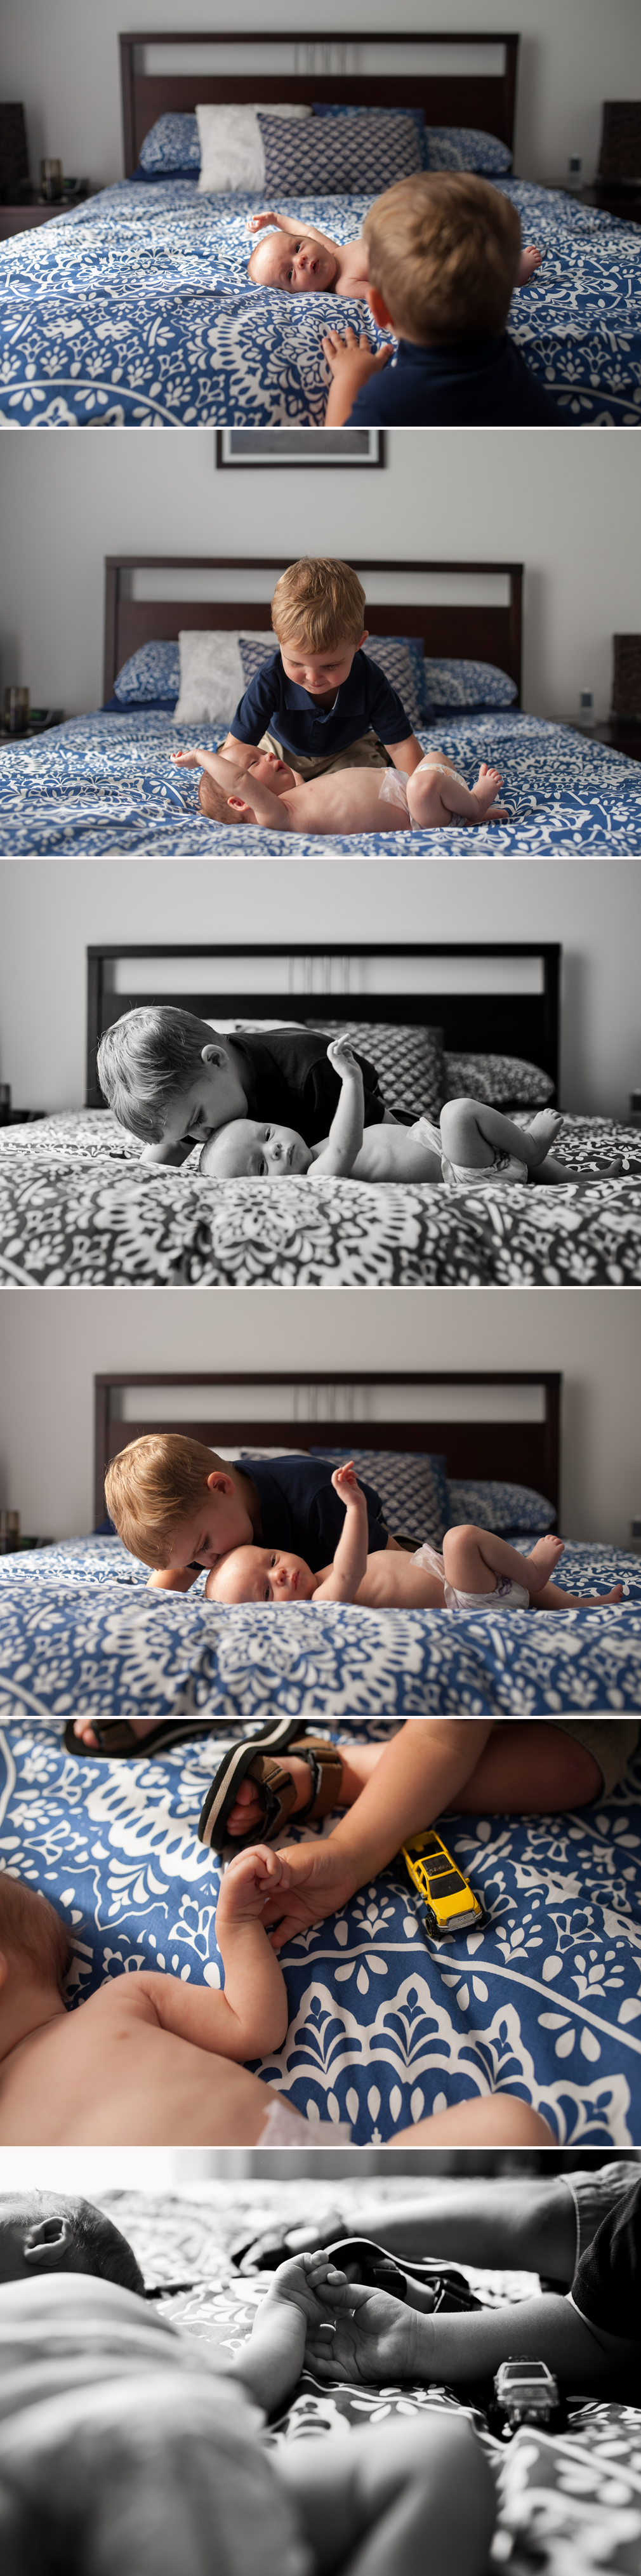 Newborn-baby-boy-at-home-lifestyle-photography-2.5